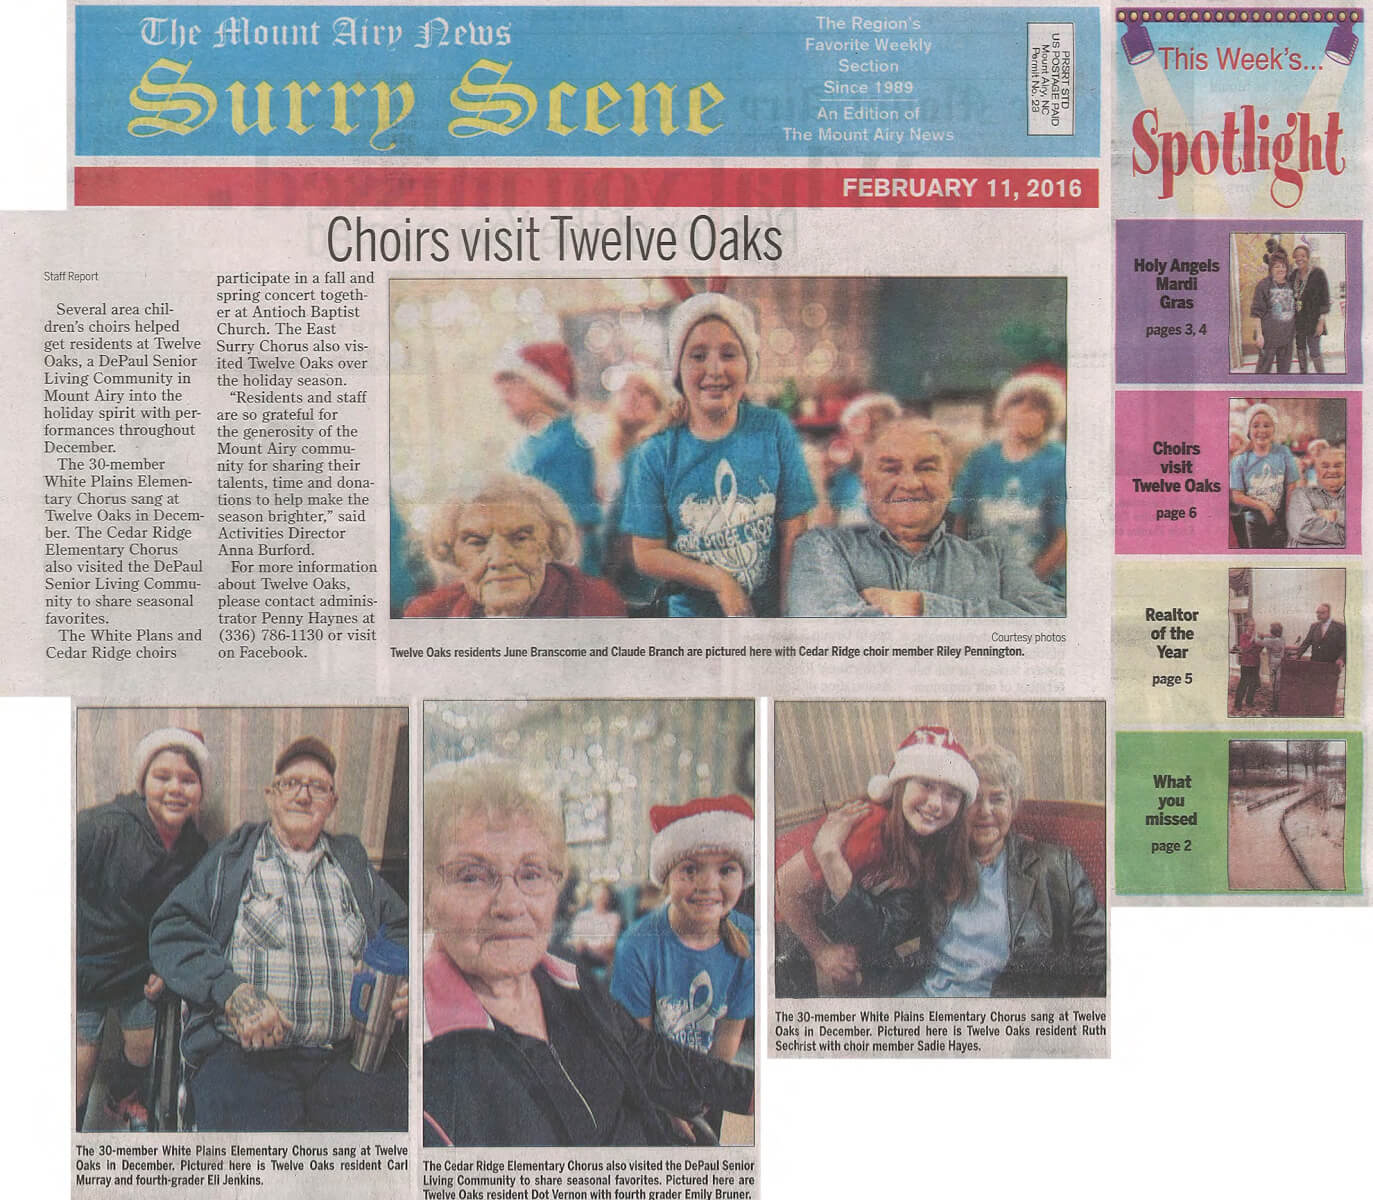 Twelve Oaks Receives Choir visit story in the Mount Airy New February 11, 2016